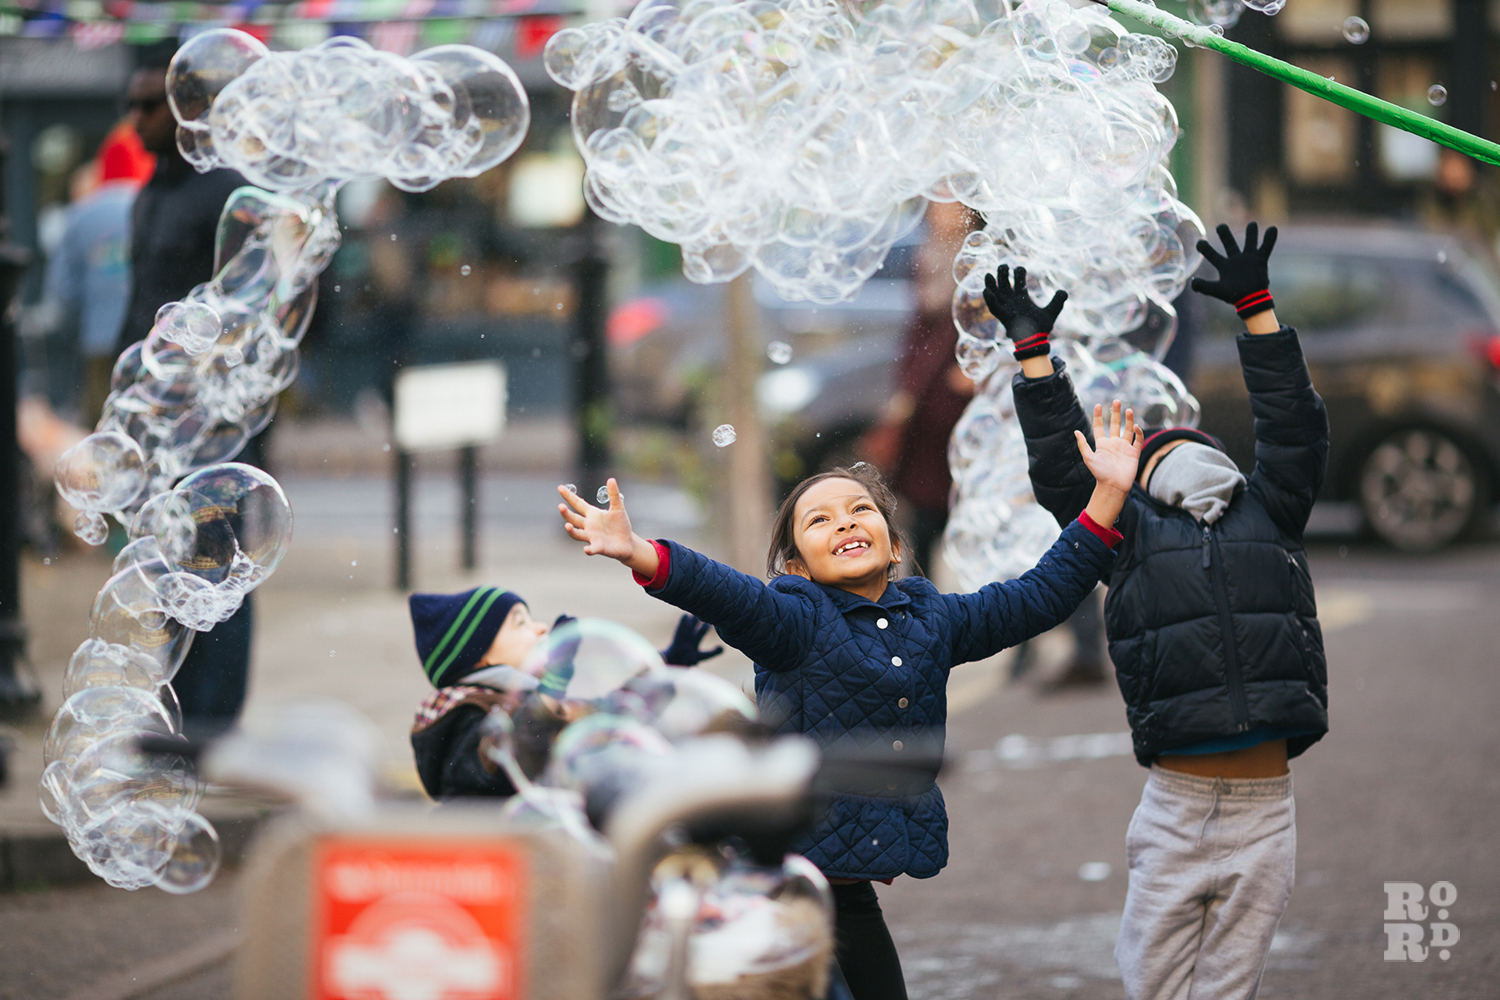 Child reaching up to giant bubbles at Roman Road Christmas Fair 2016